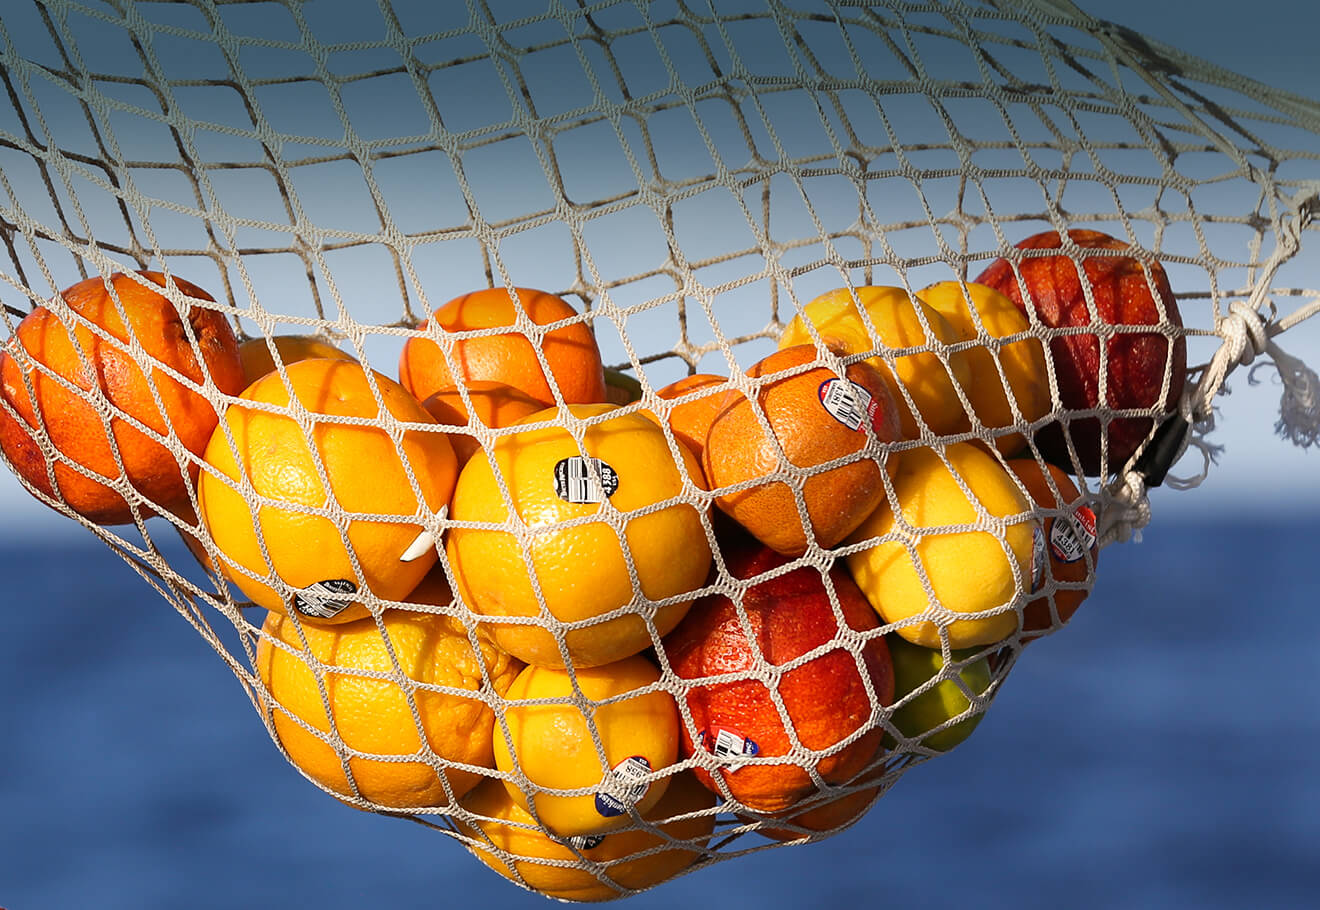 Fresh fruits hanging from a boat